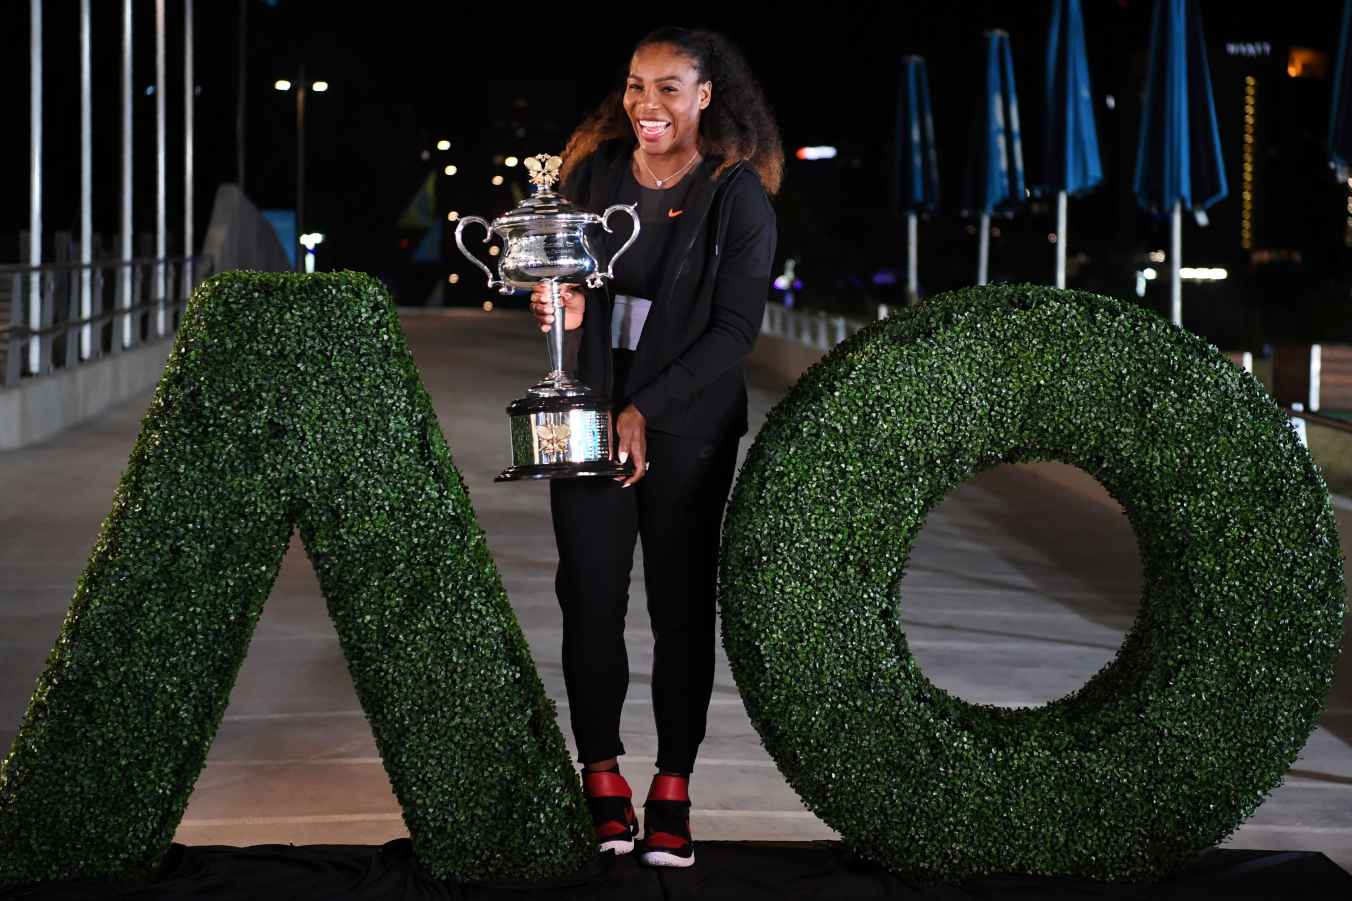 Serena Williams with the 2018 Australian Open trophy